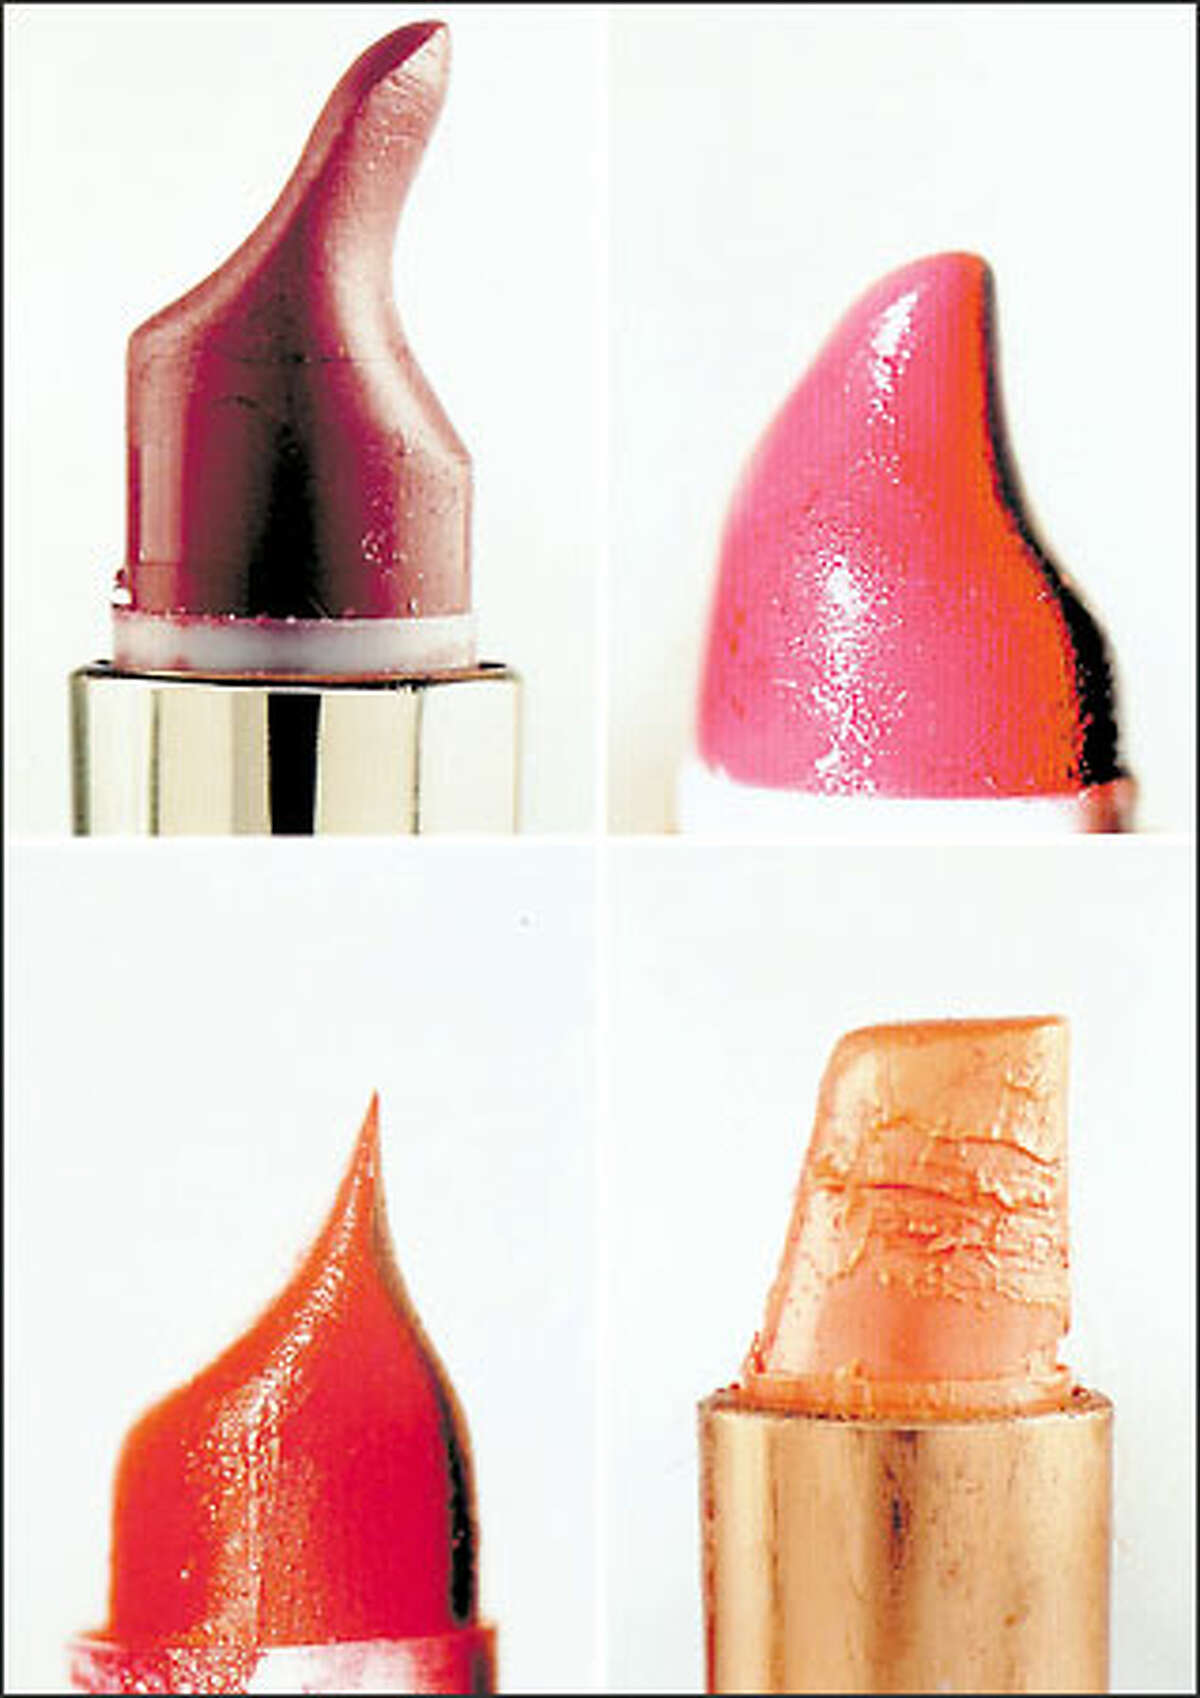 Stacy Greene's photos of lipsticks deformed in service to beauty are on view at ConWorks.